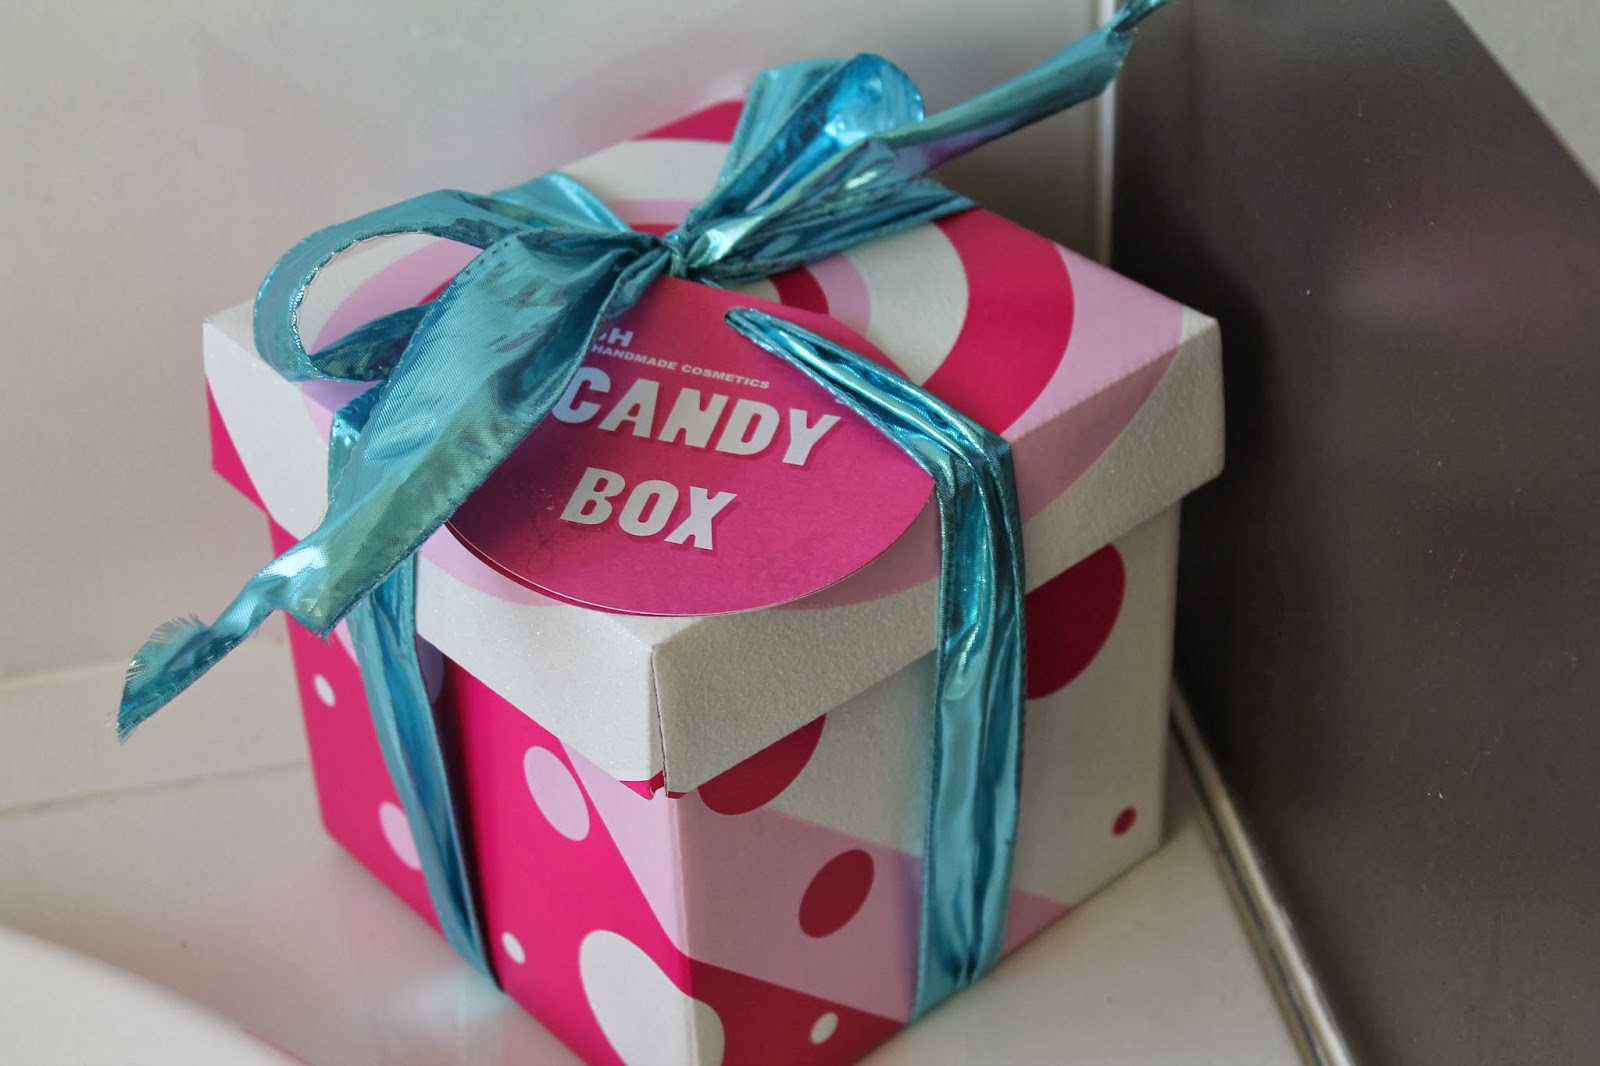 Christmas Candy Boxes  xobeautyheartxo Review Lush Christmas Candy Box